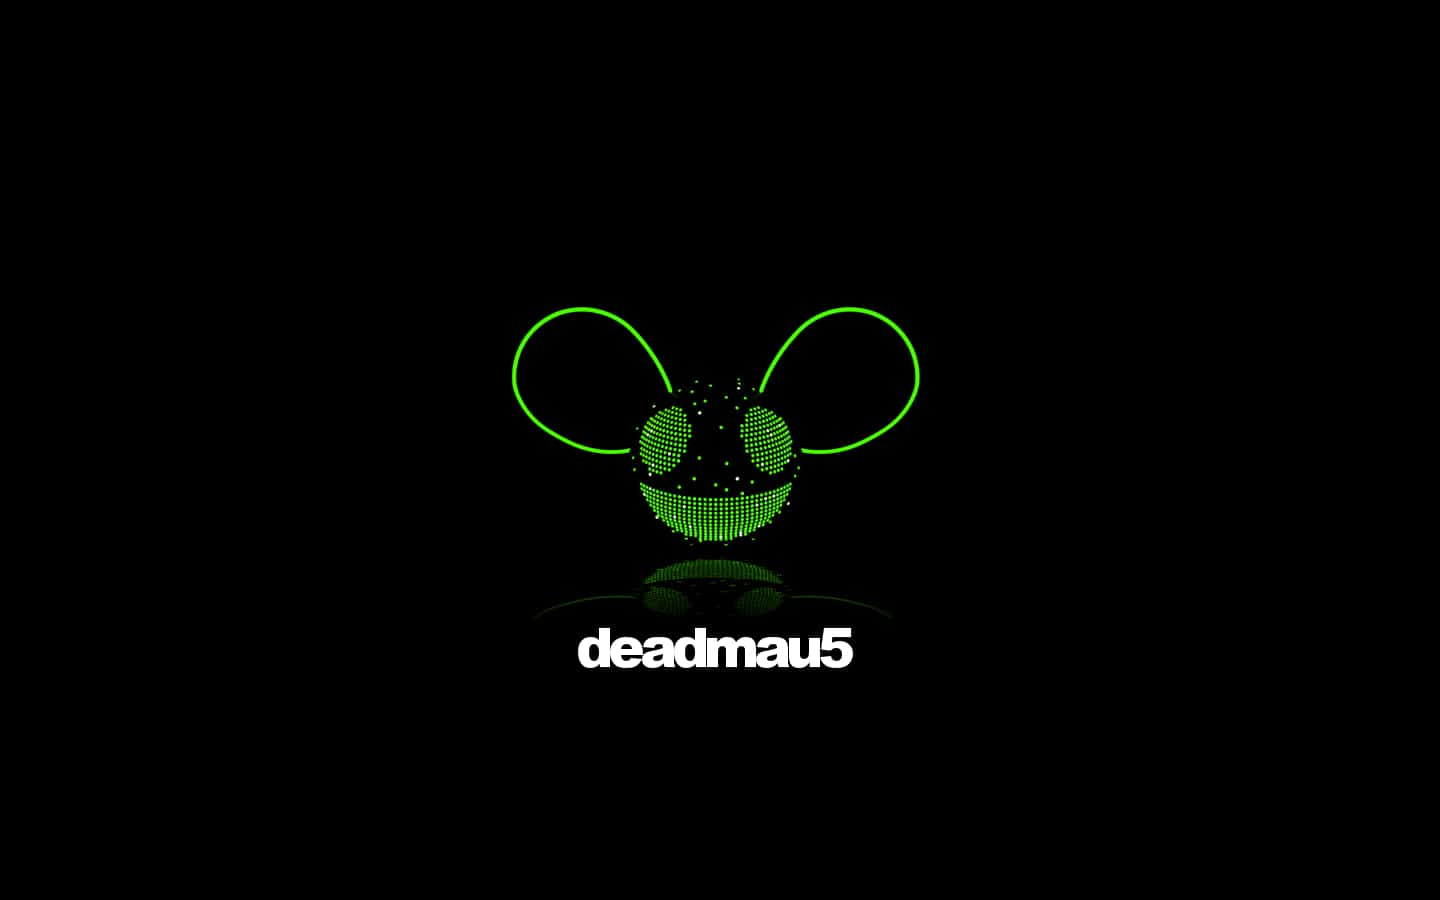 Wallpaper Wednesday Collection Of Deadmau5 Wallpapers